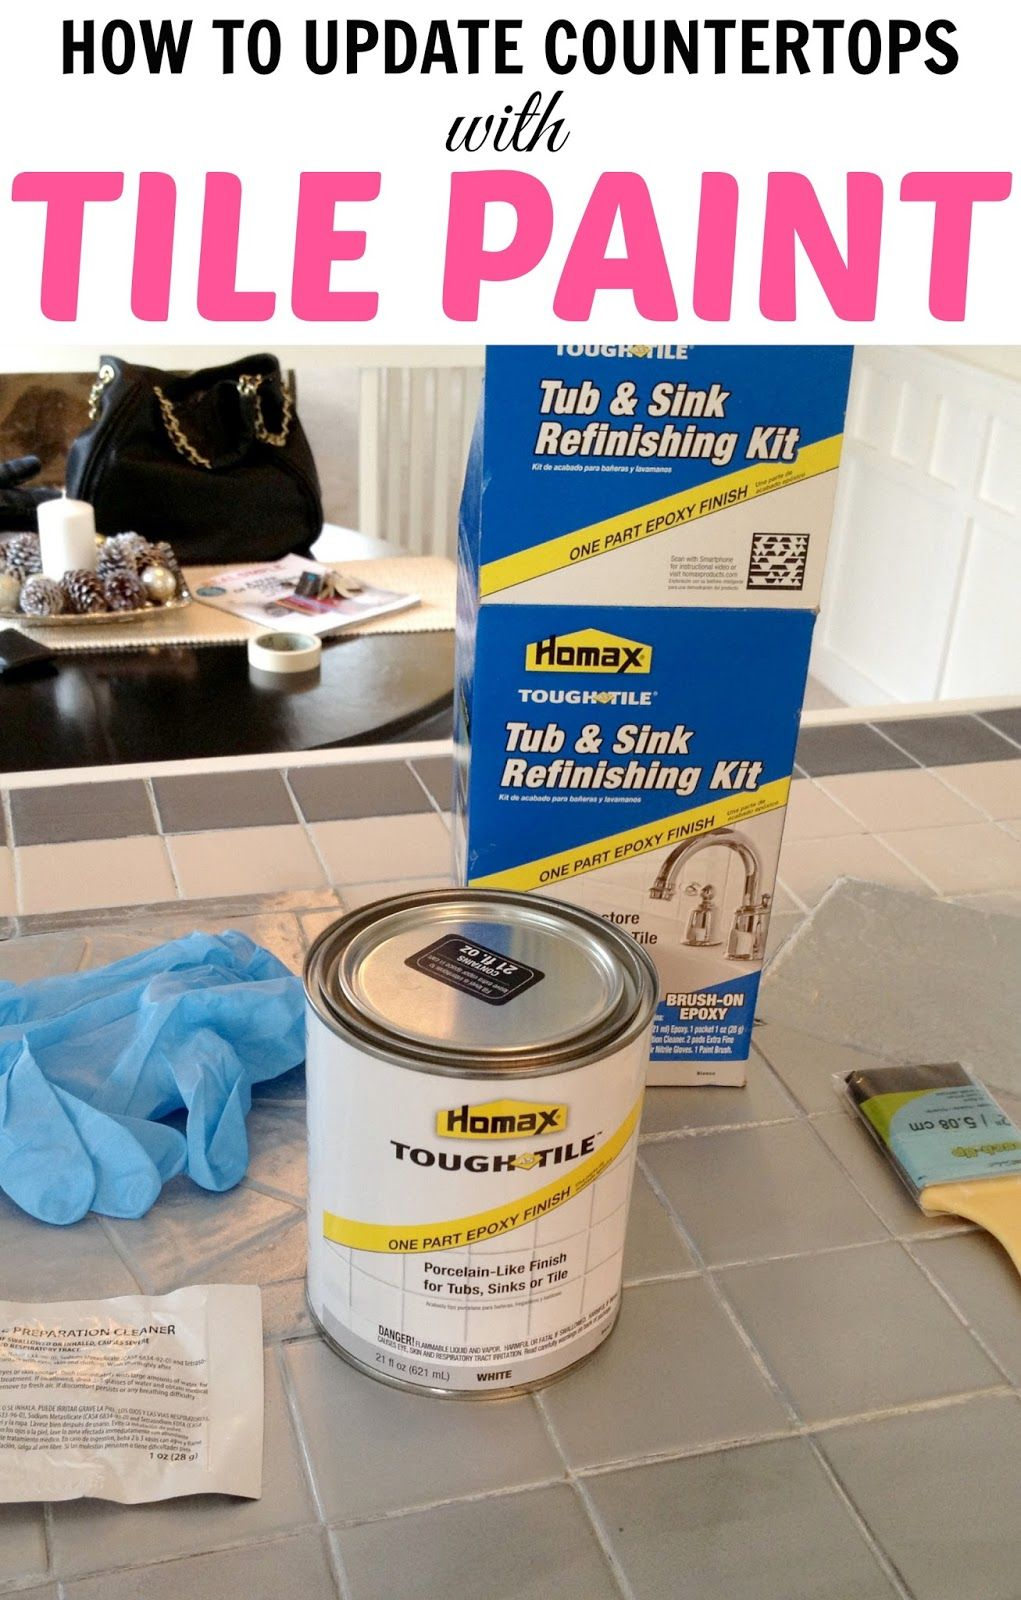 How to paint tile countertops product called homax tough tile how to paint tile countertops product called homax tough tile tub sink refinishing kit dailygadgetfo Image collections